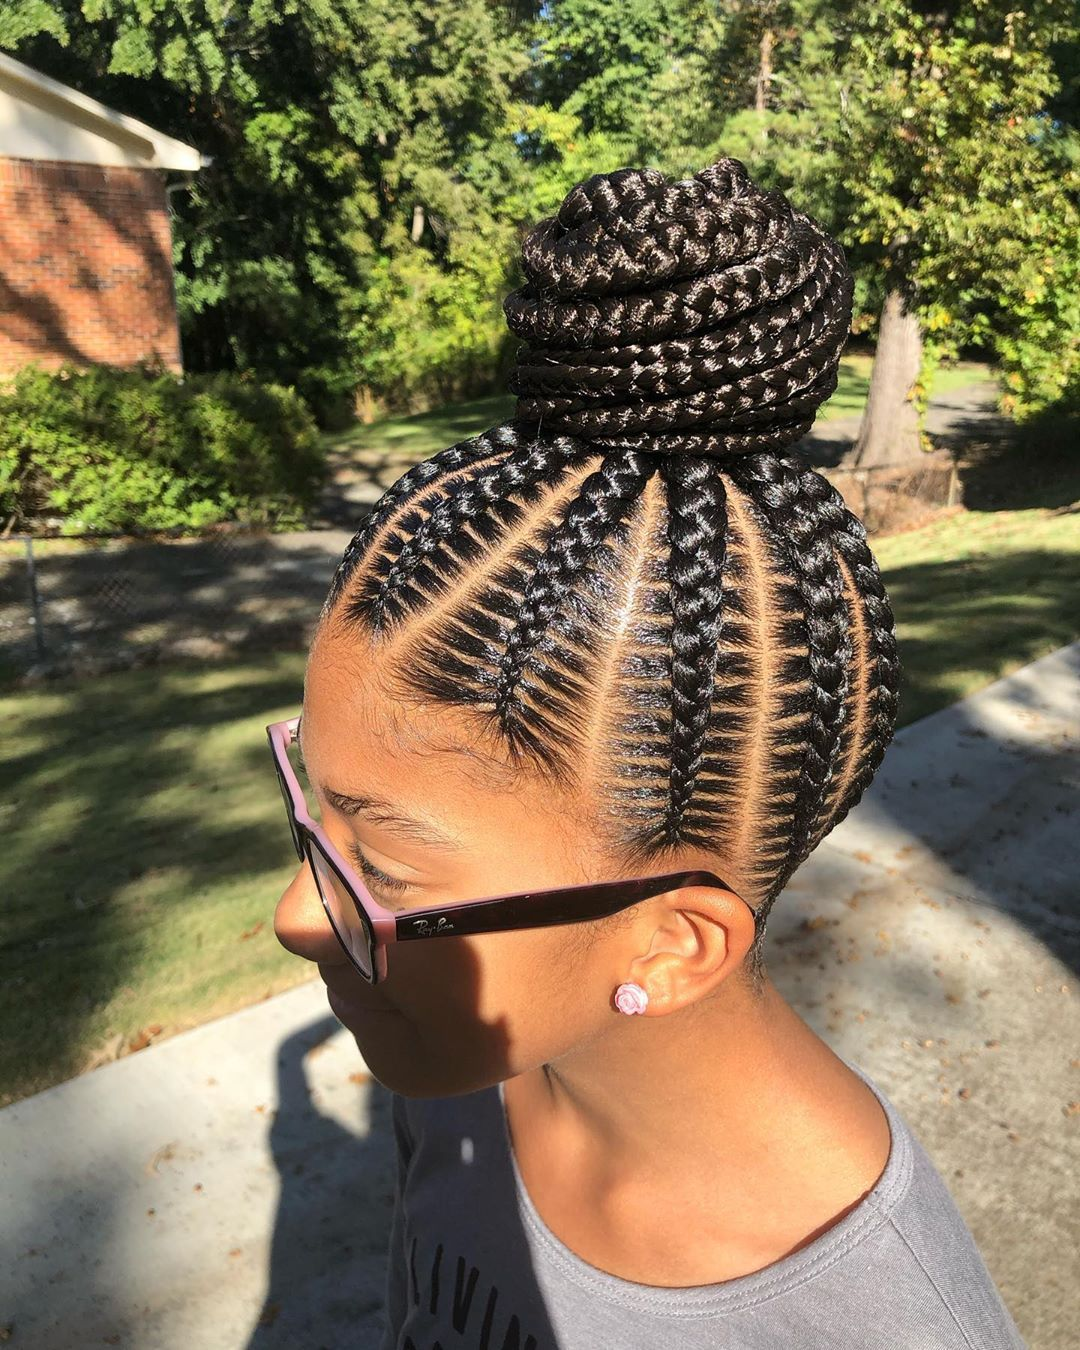 Braids By Chinia Llc On Instagram Do Y All Like It Better Up Or Down Comment Down B Braided Hairstyles Cute Braided Hairstyles Easy Hairstyles For Long Hair